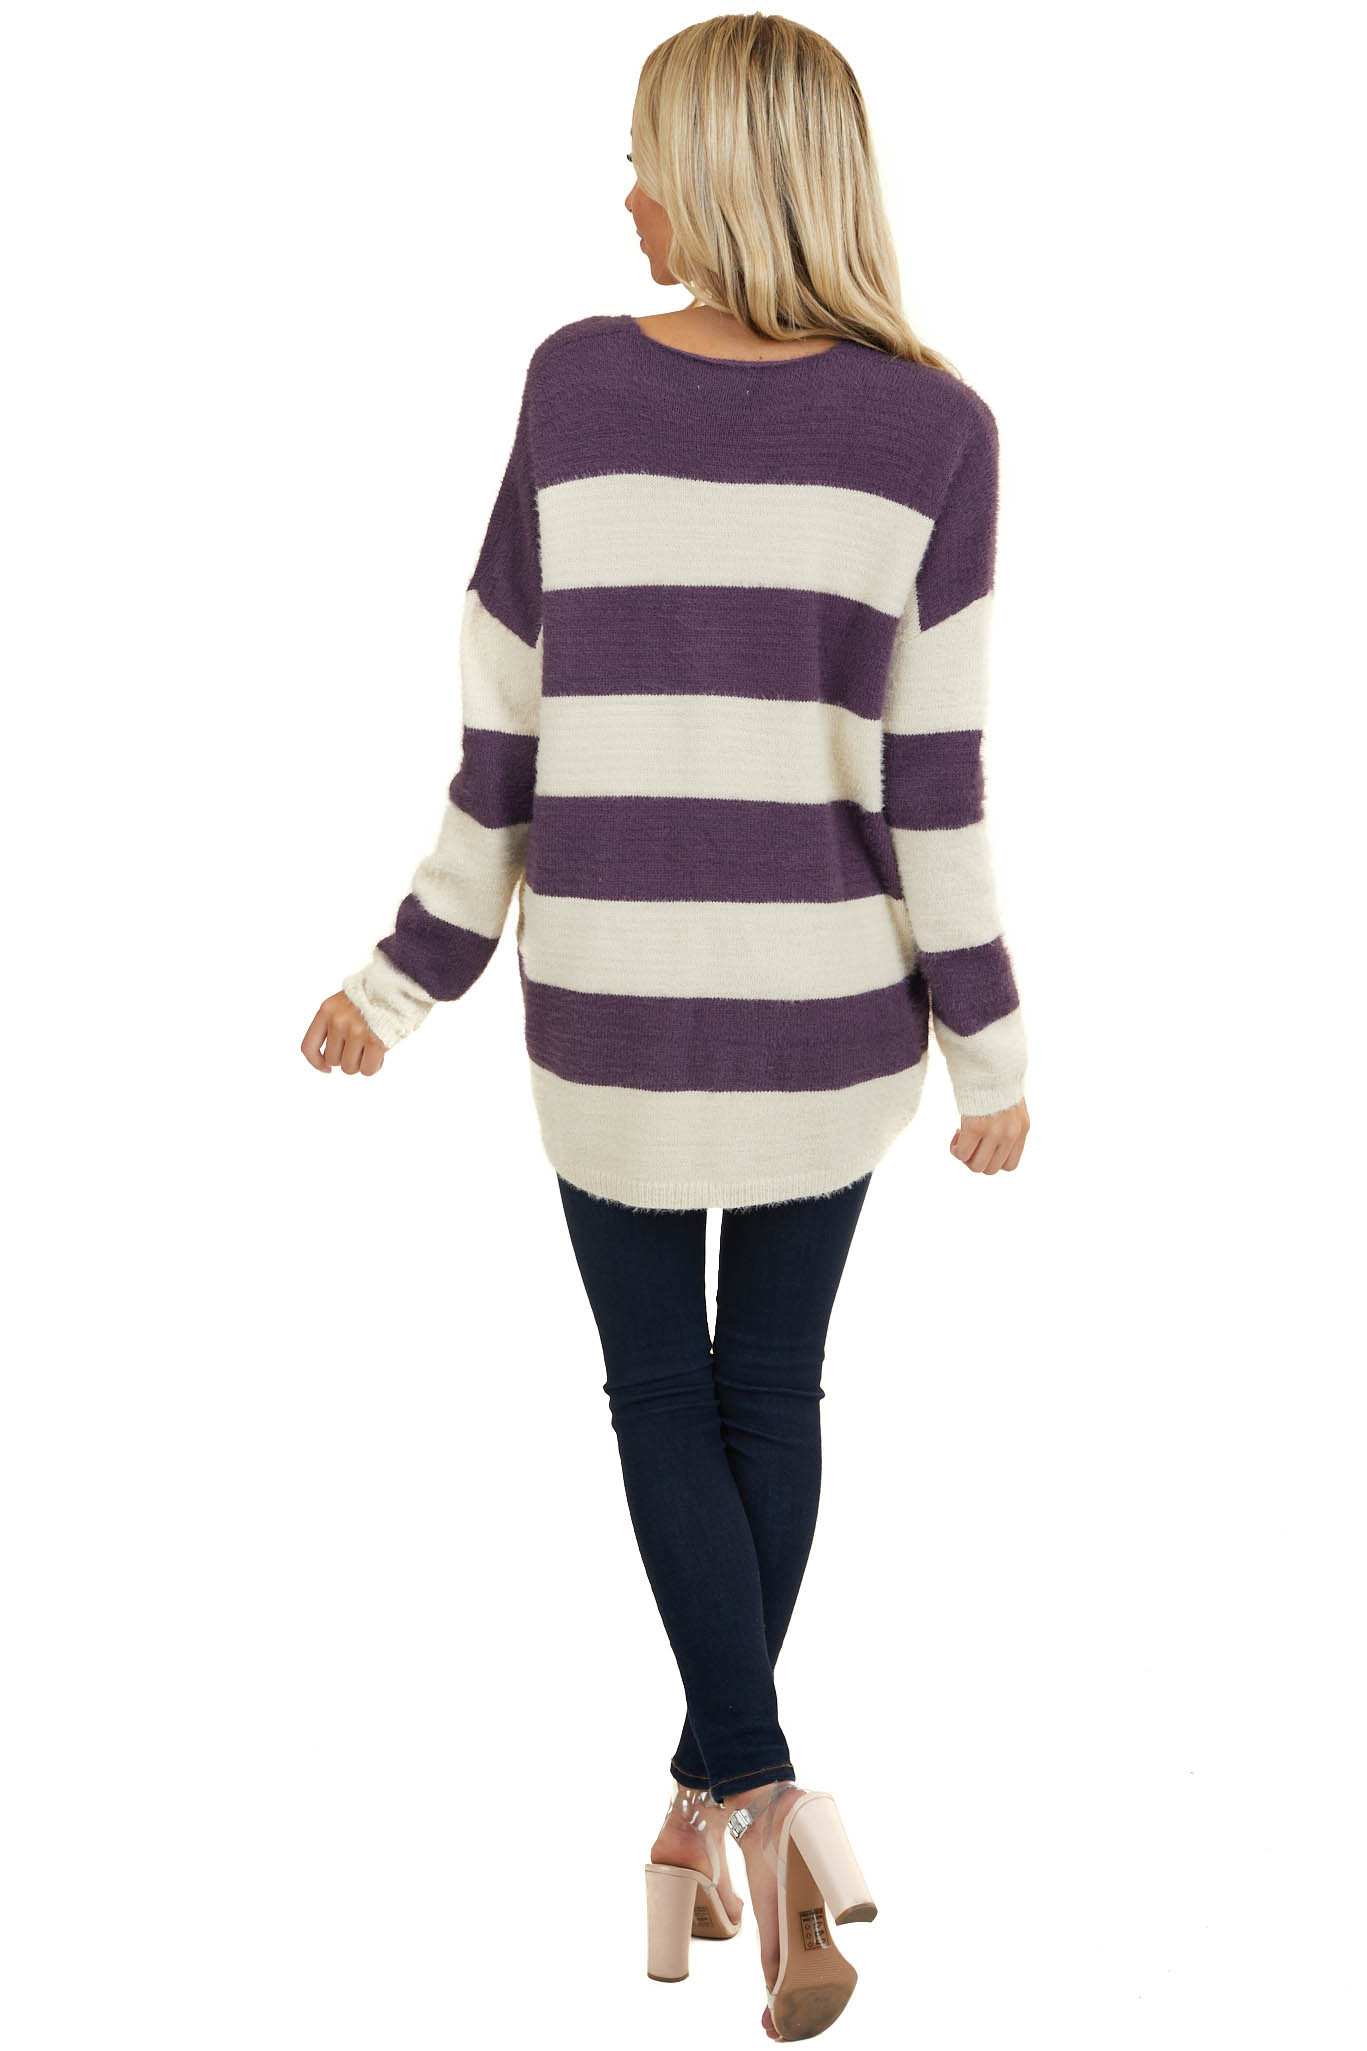 Indigo and Ivory Stripe Print Knit Sweater with V Neckline